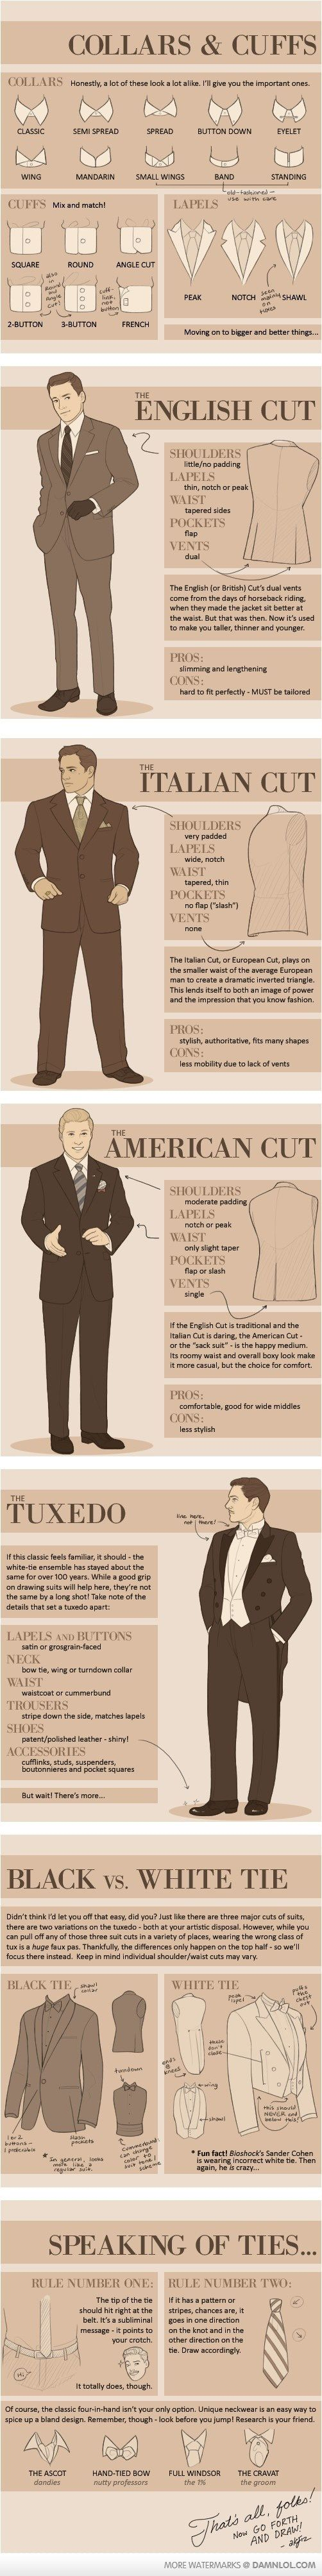 Gentlemen: Guide to #Men's #Clothing: Collars & Cuffs, Suit Cuts, Tuxedos, and Ties. (It's a guide for drawing these items, but still, it's a perfect reference.)